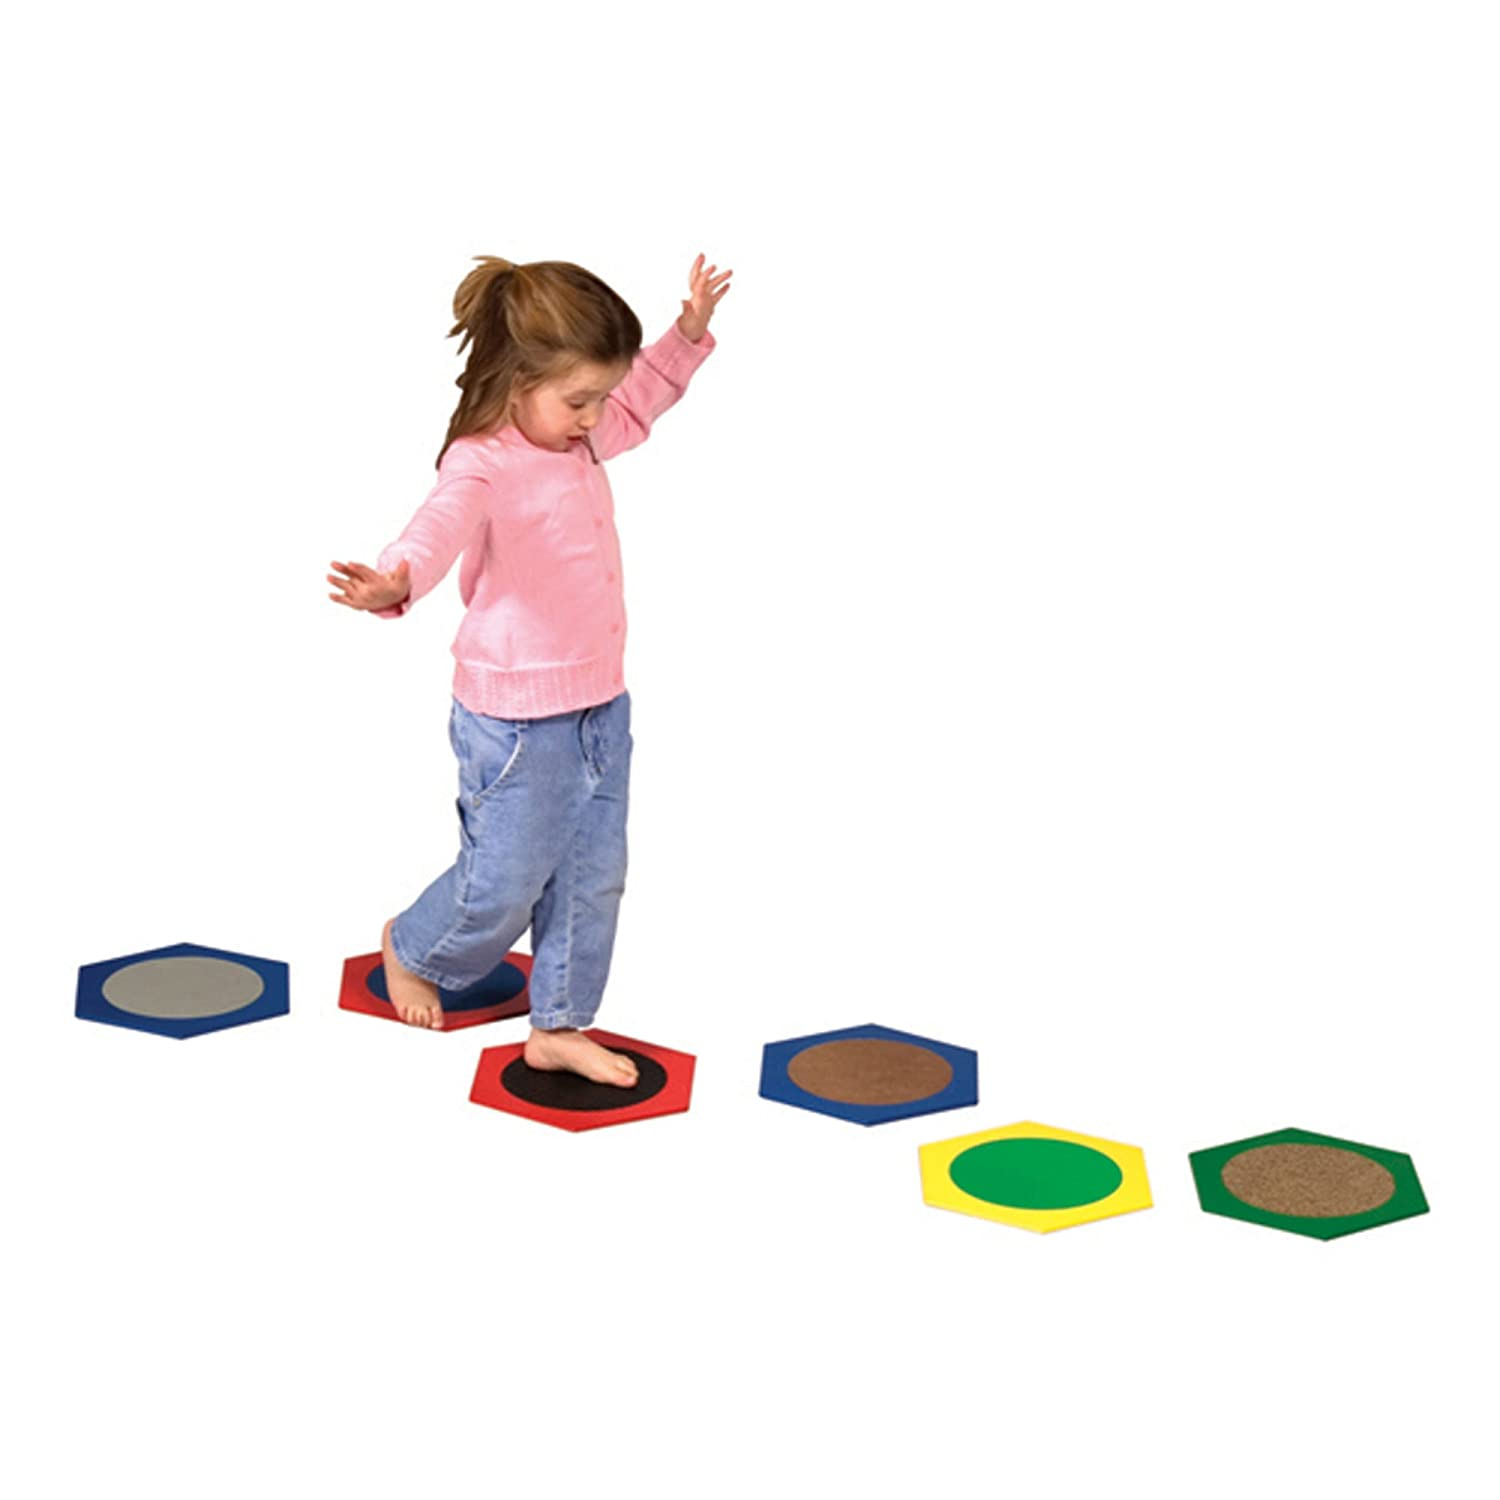 Sensory Stepping Stones Amazon Toys & Games